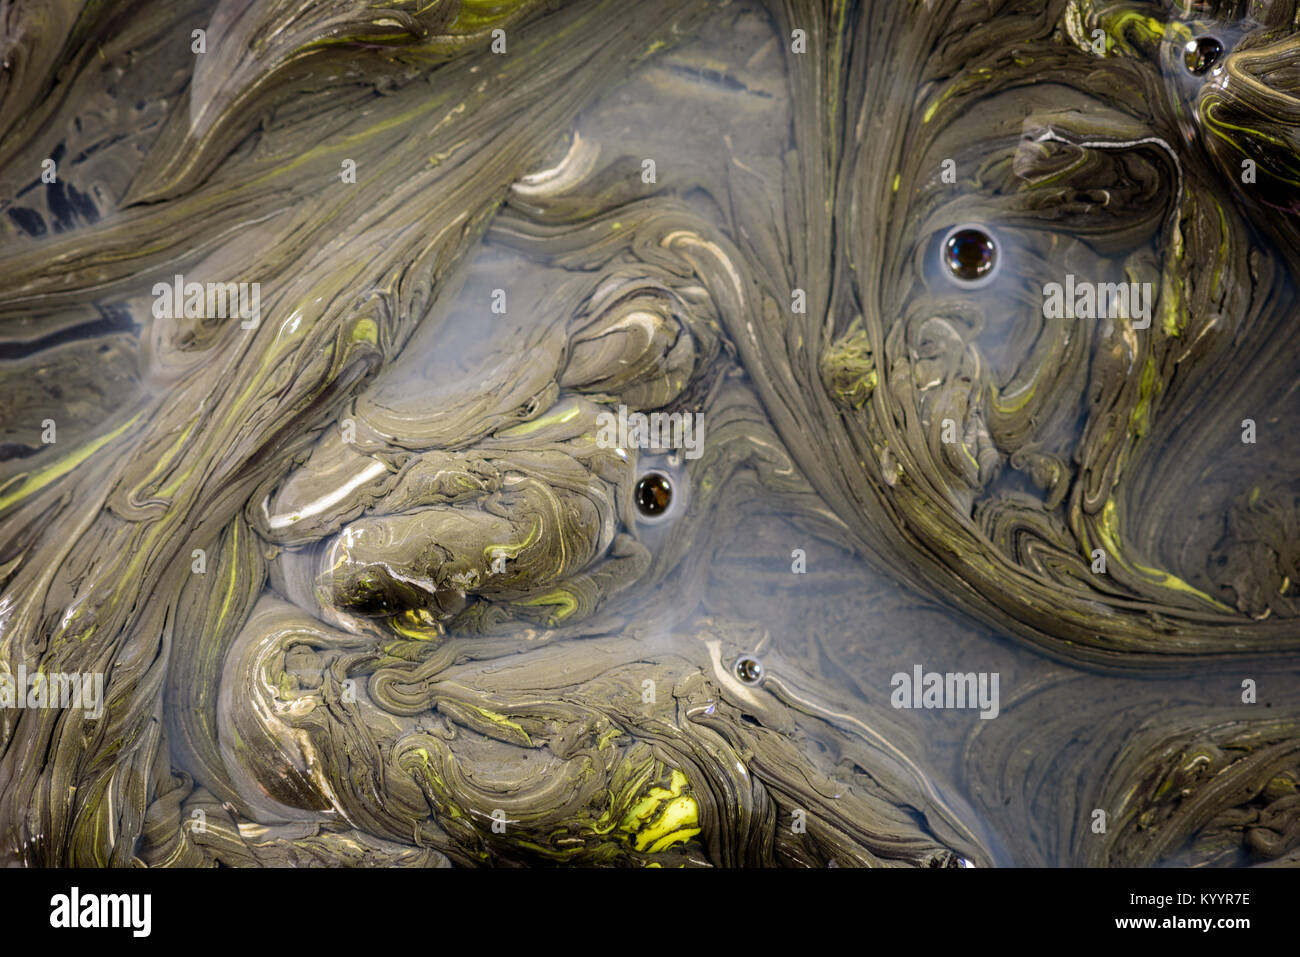 Congealed oil on water in yellow and black creating an abstract organic pollution based design. Copy space area Stock Photo